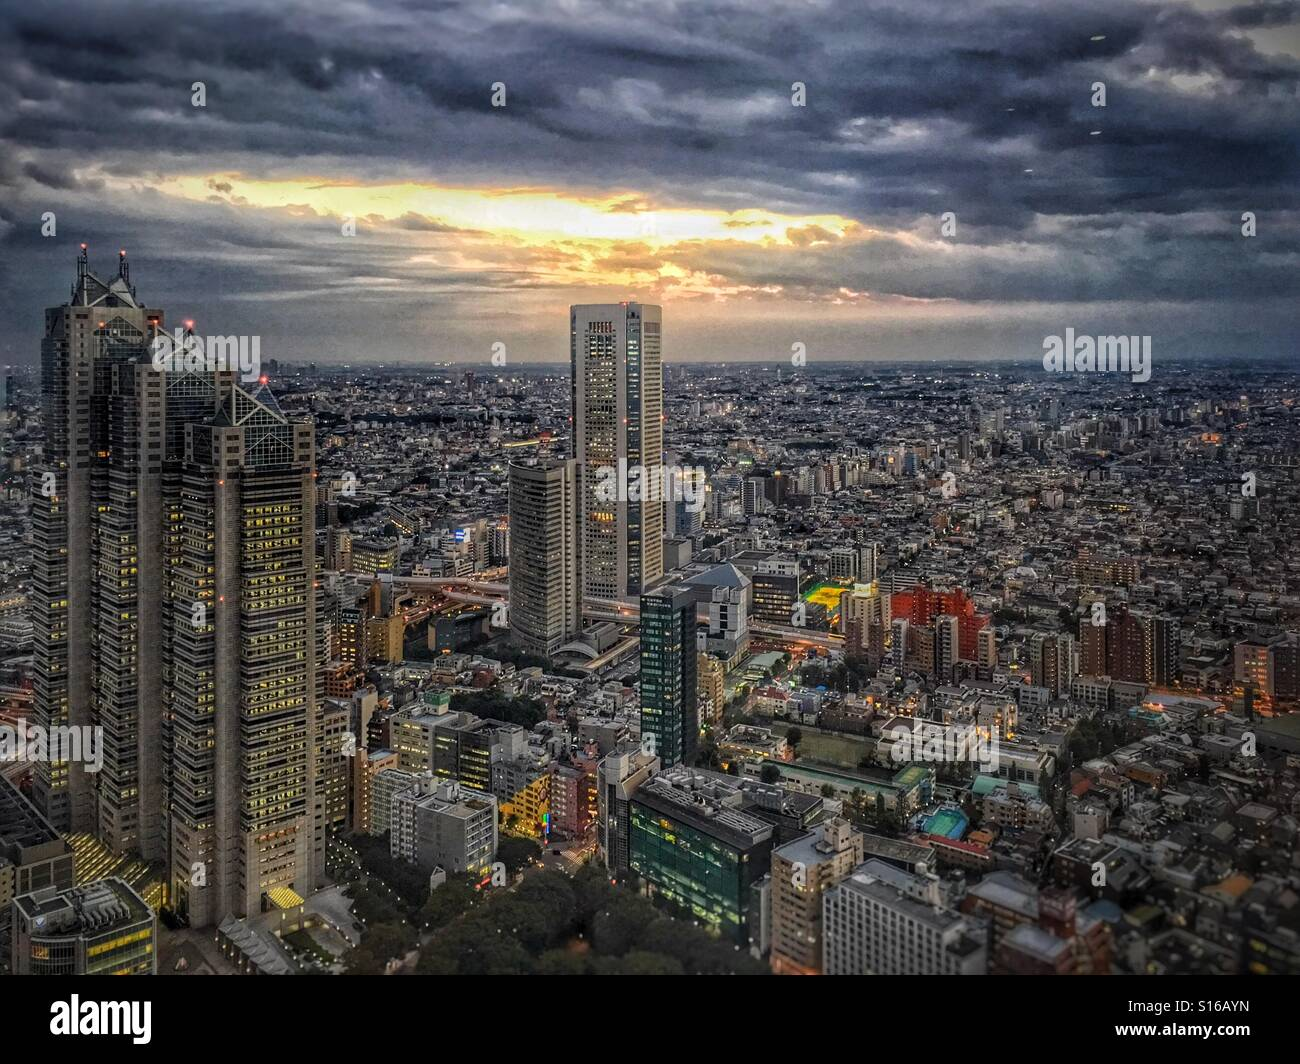 View across Tokyo city at sunset - Stock Image